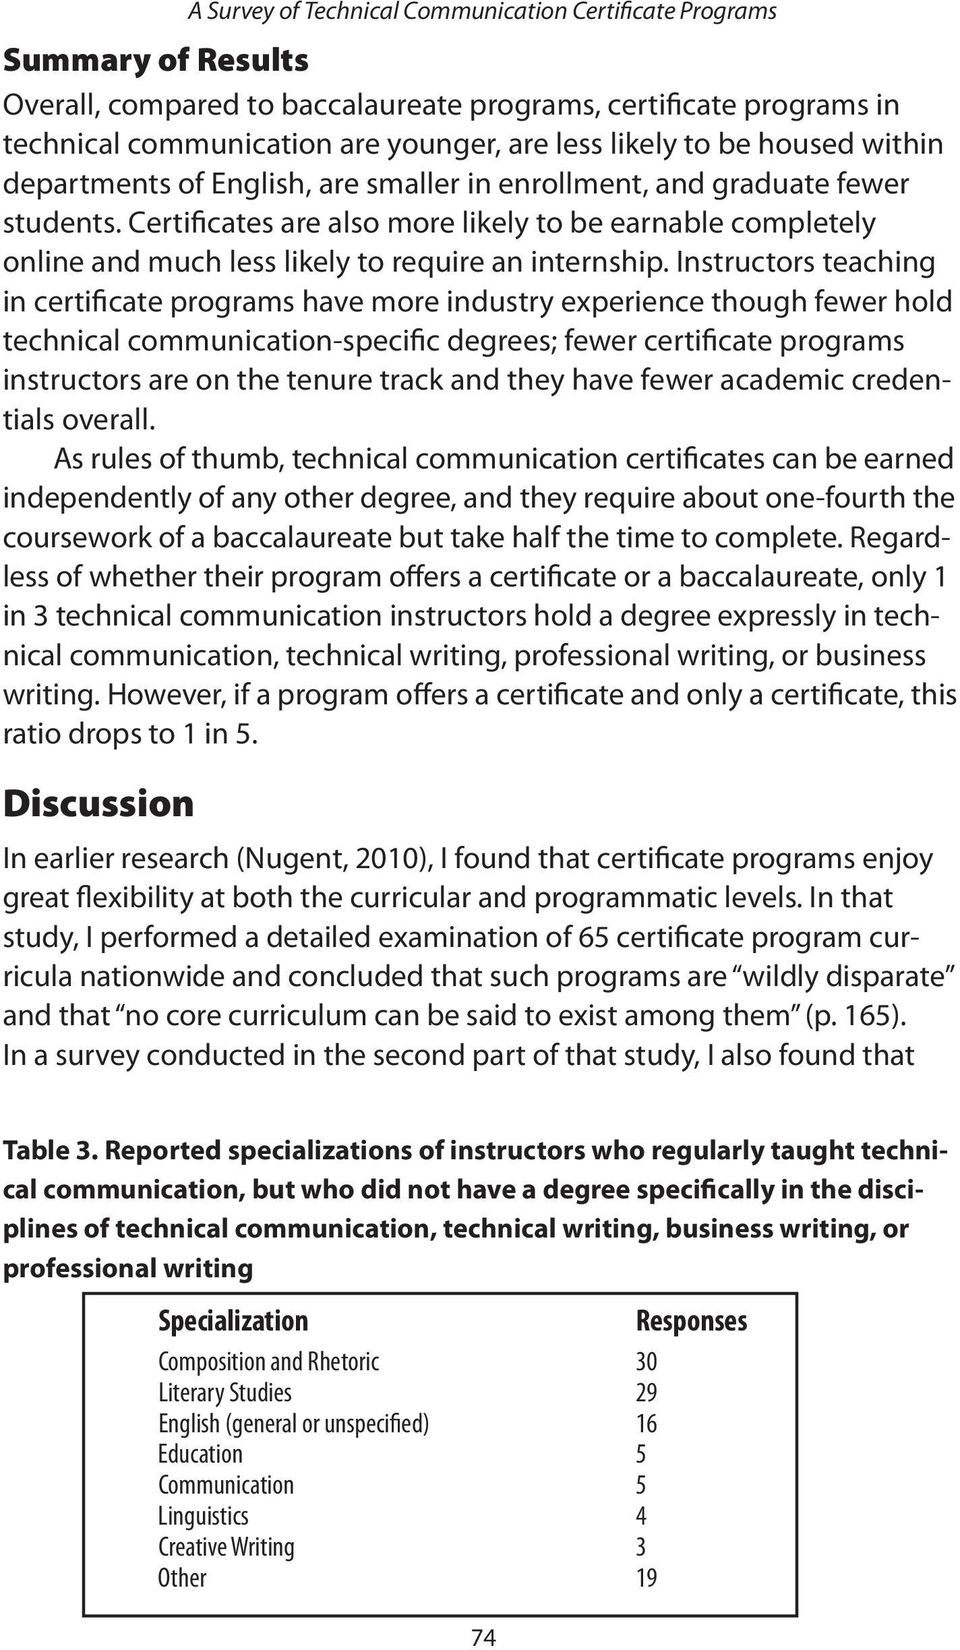 Instructors teaching in certificate programs have more industry experience though fewer hold technical communication-specific degrees; fewer certificate programs instructors are on the tenure track